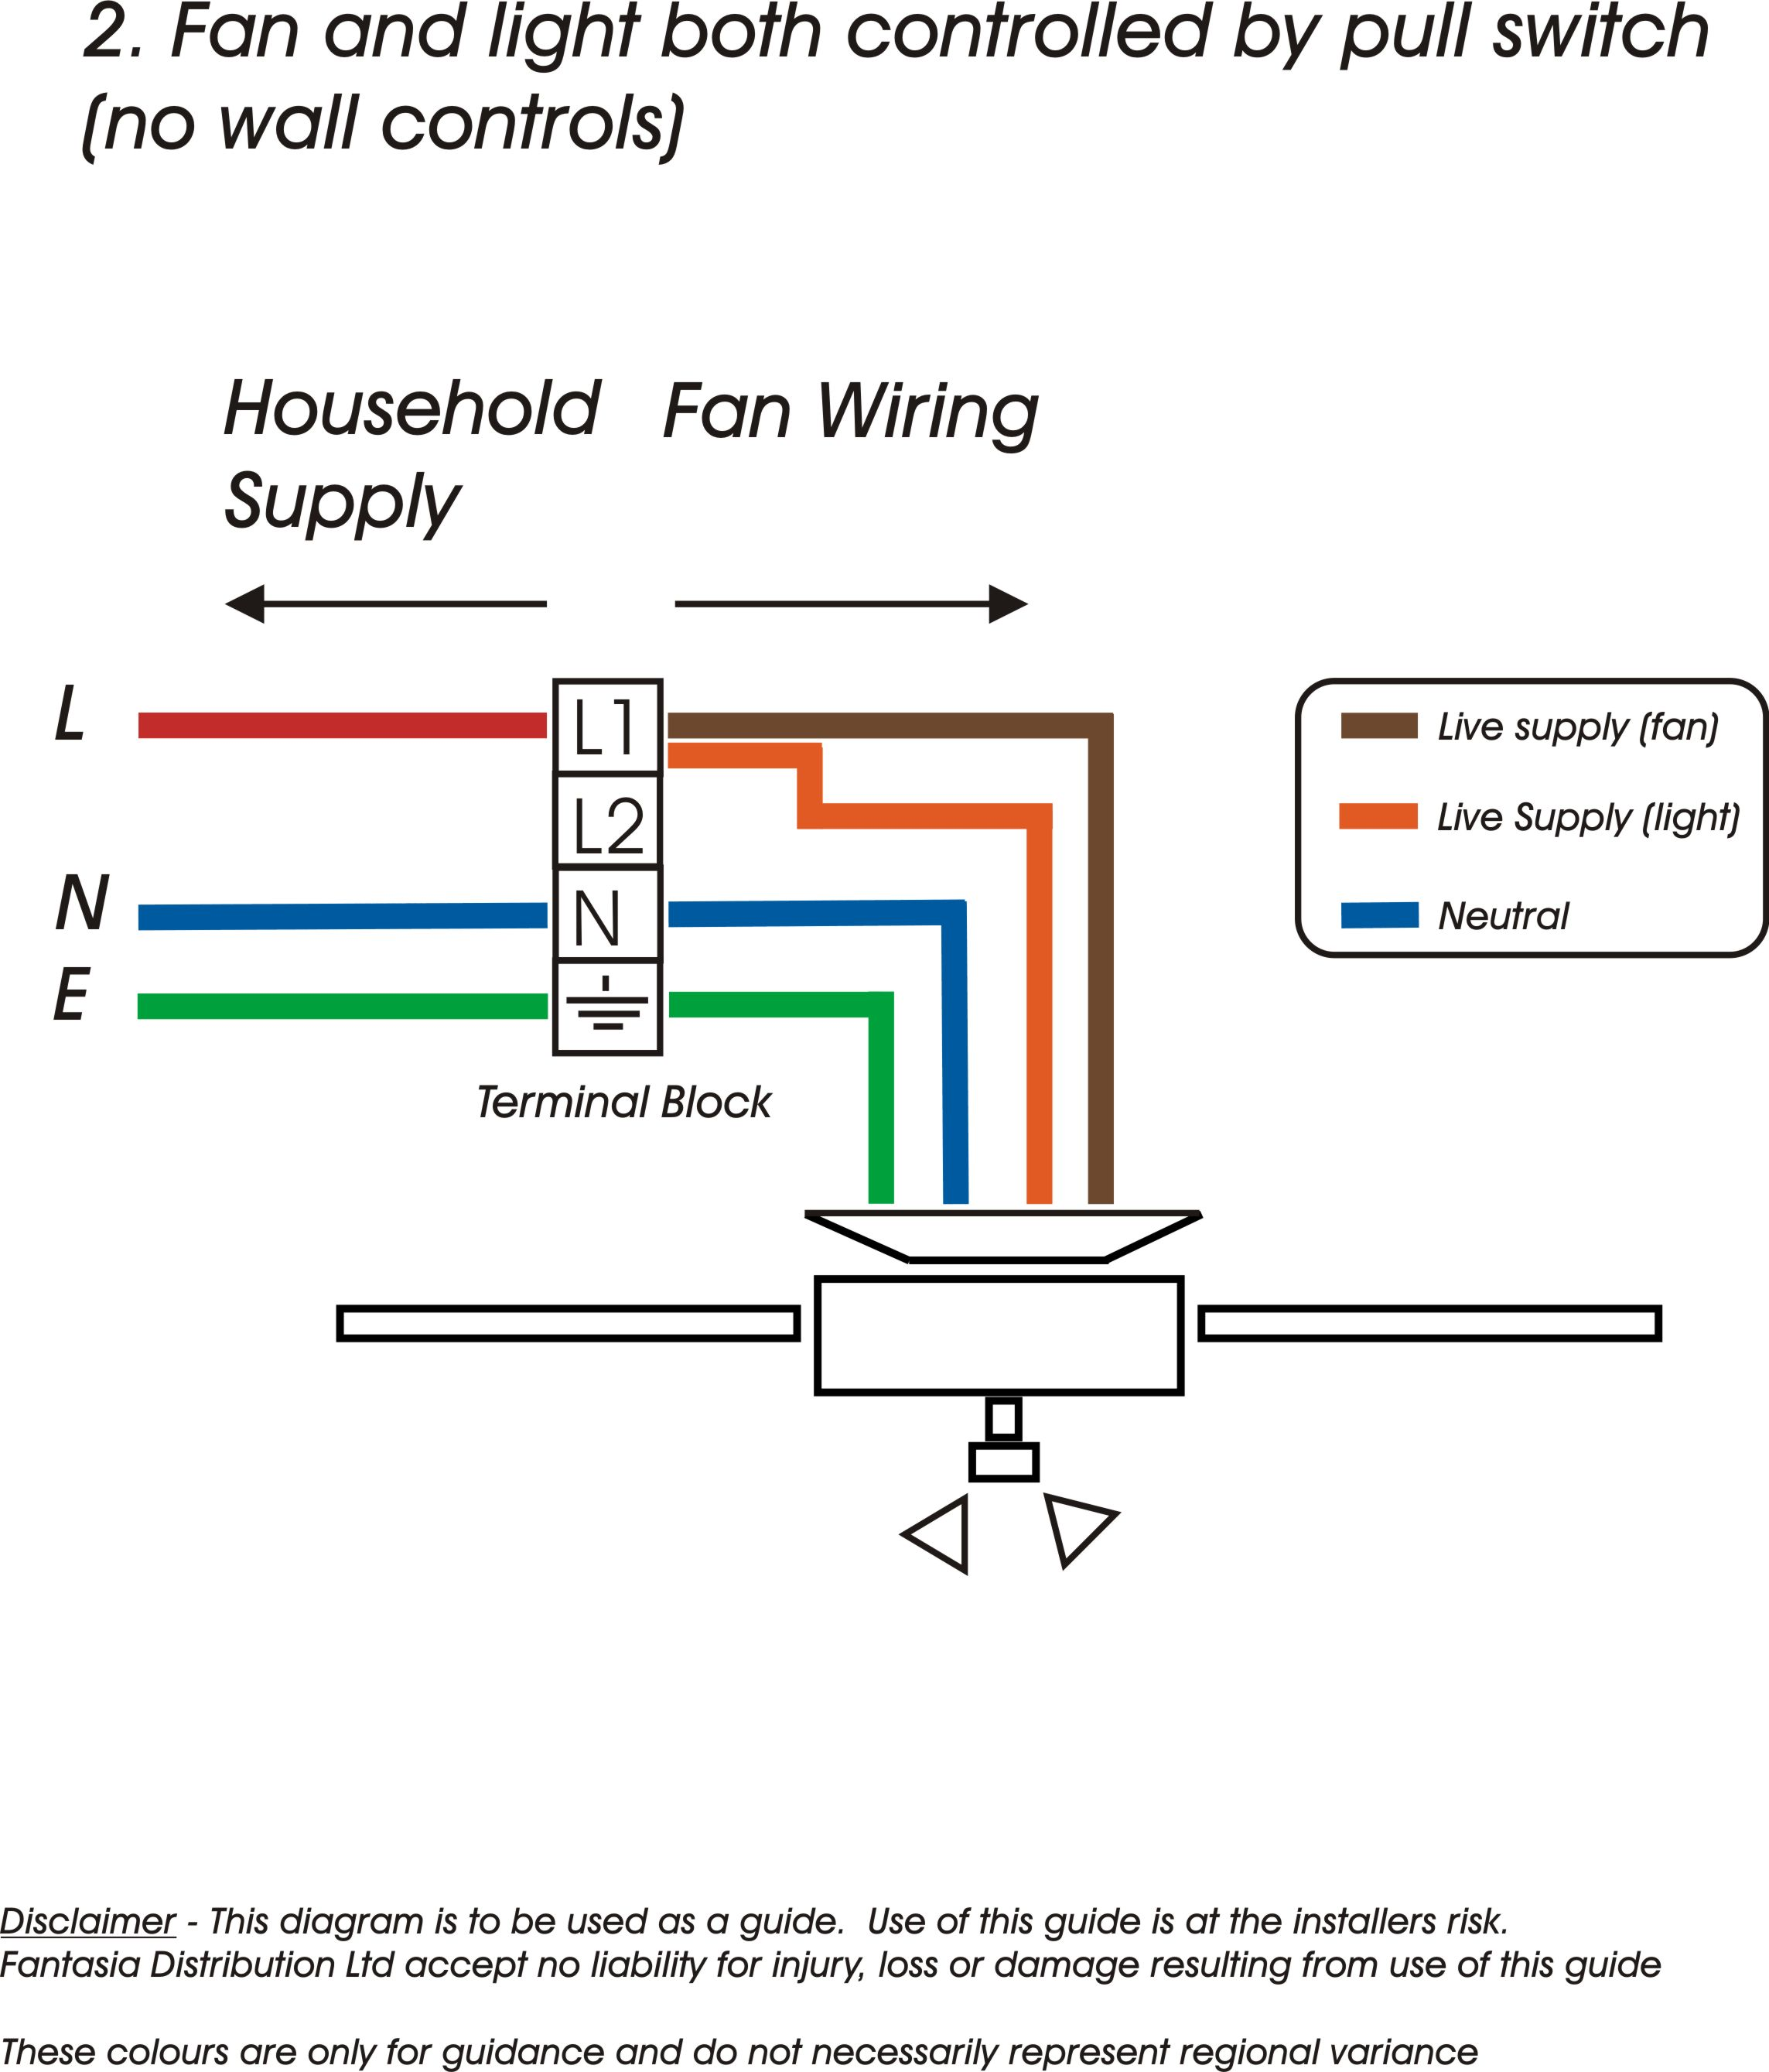 wiring ceiling fans 2?resize=800%2C937 hampton bay ceiling fan motor wiring diagram integralbook com hampton bay ceiling fan wiring diagram red wire at virtualis.co